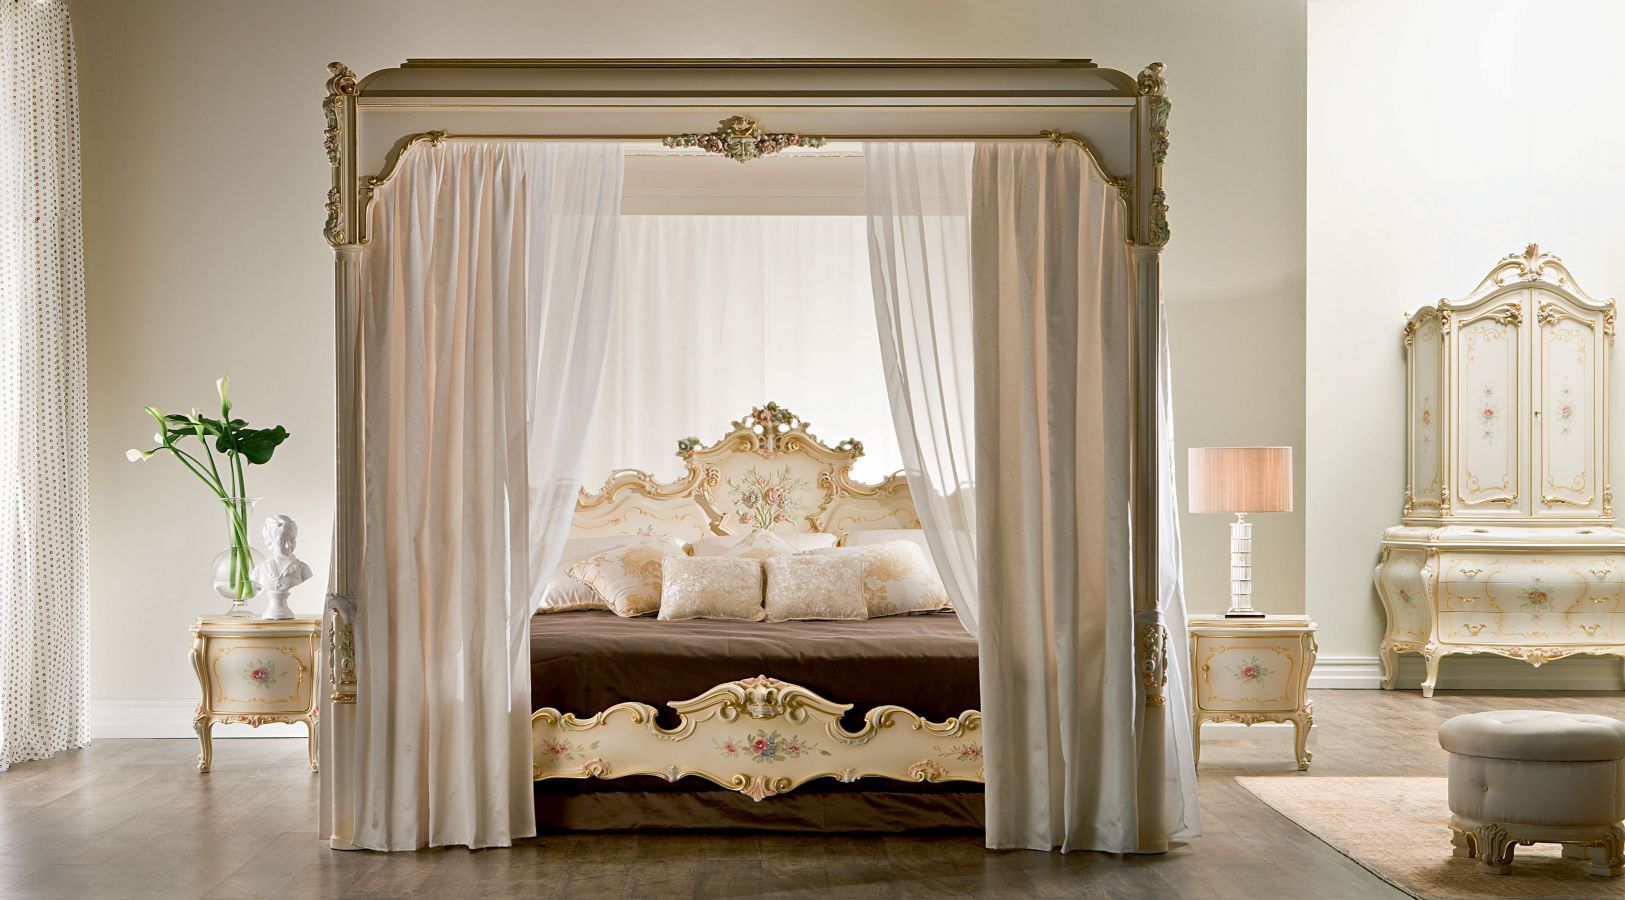 Rococo Bed Kopen : Barok bed finest tagged furniture for bedroom sitting area